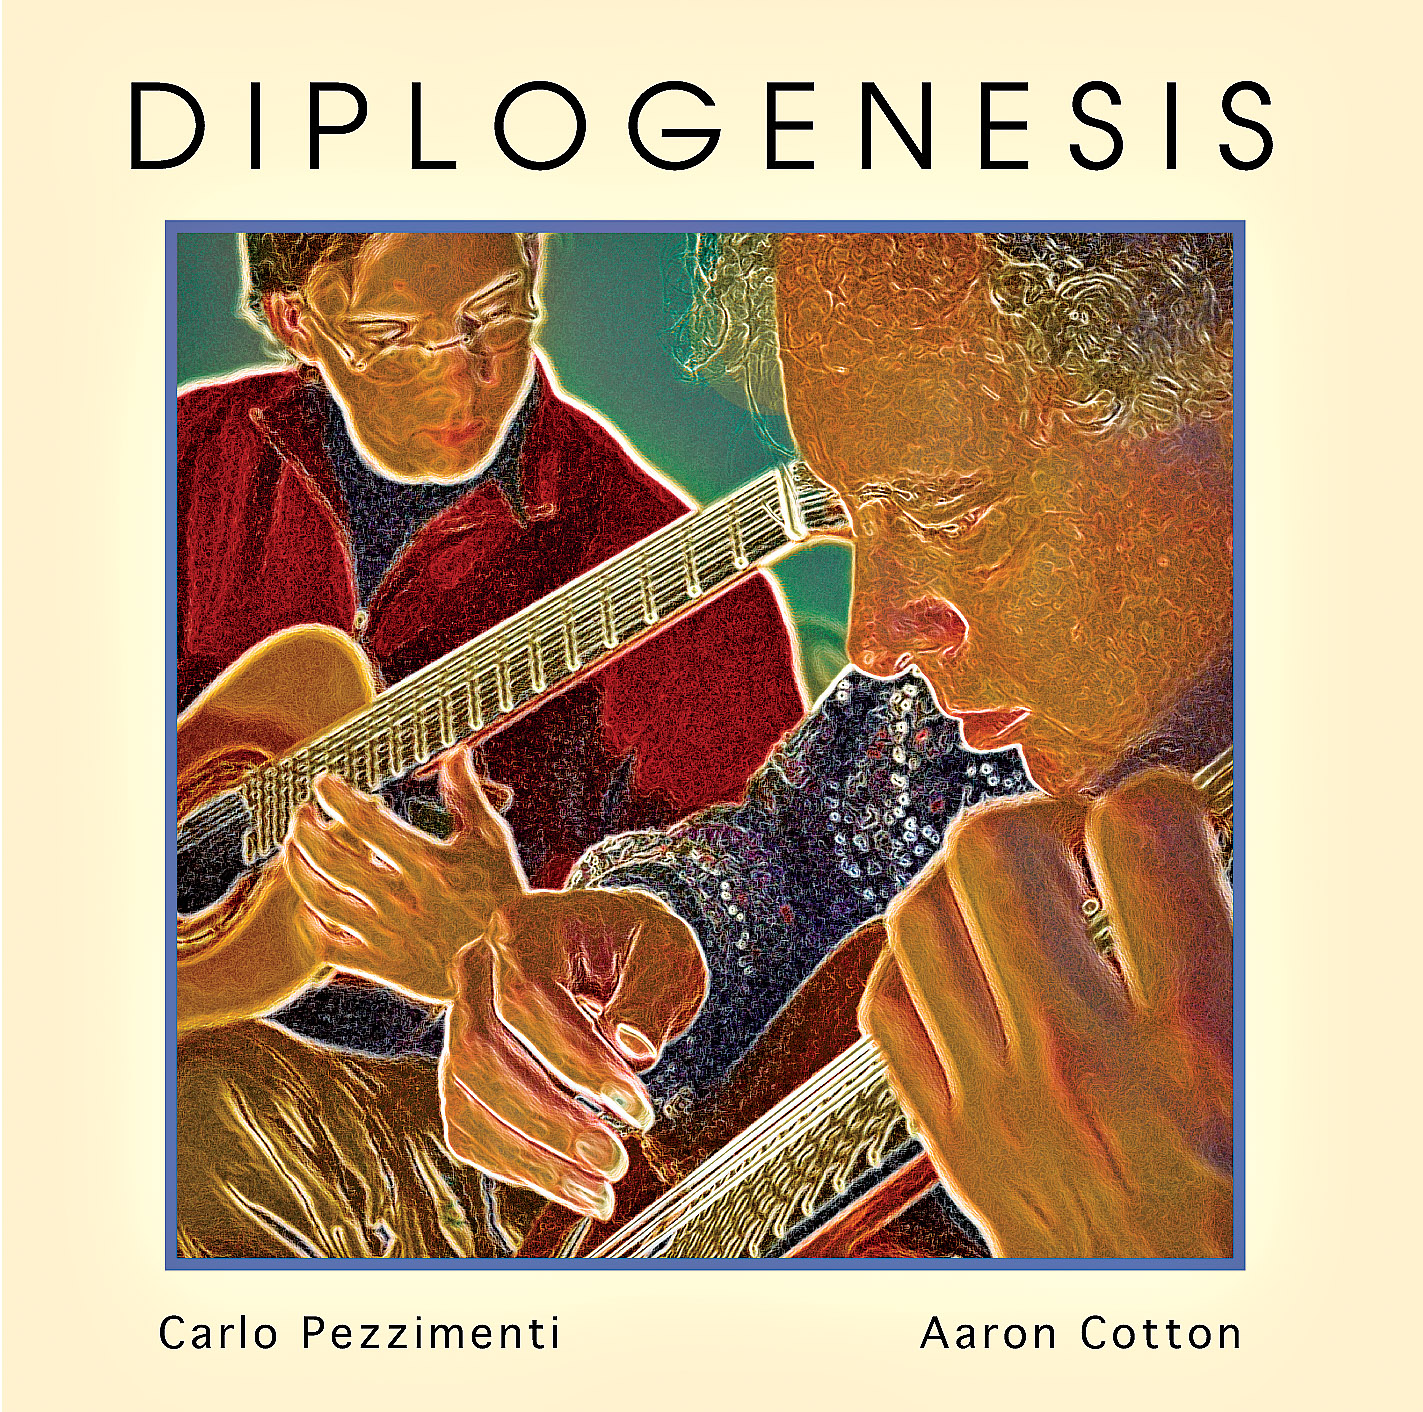 Carlo Pezzimenti and Aaron Cotton: Diplogenesis